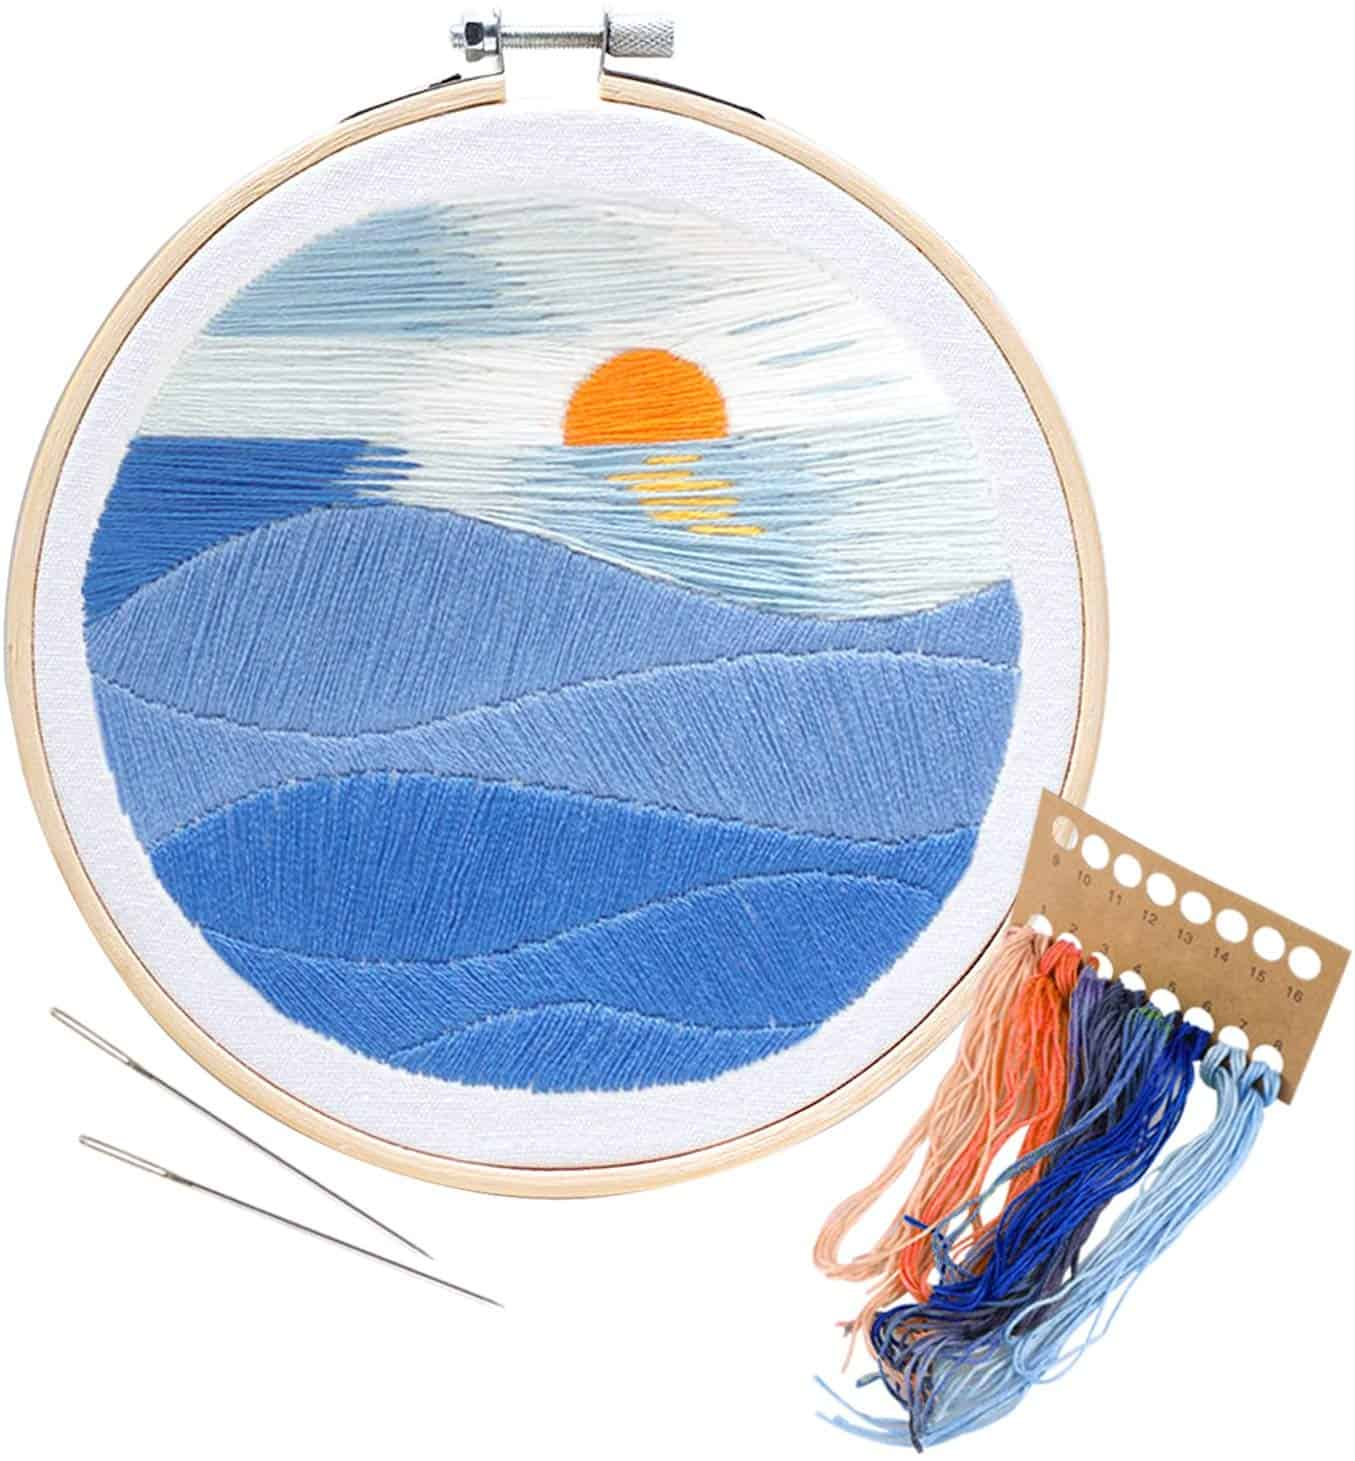 Unime sunset embroidery starter kit